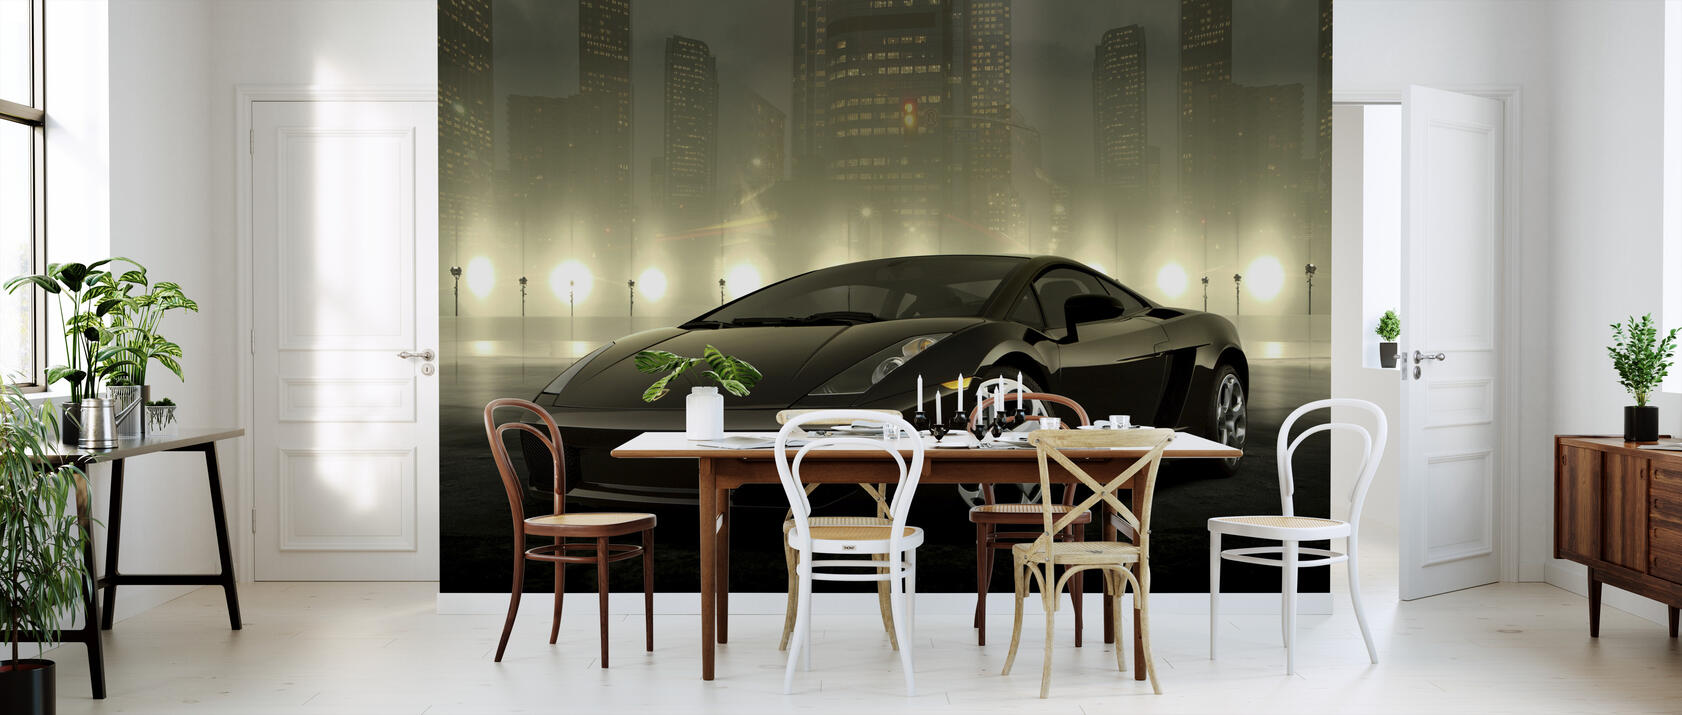 dark lamborghini fototapete nach ma photowall. Black Bedroom Furniture Sets. Home Design Ideas